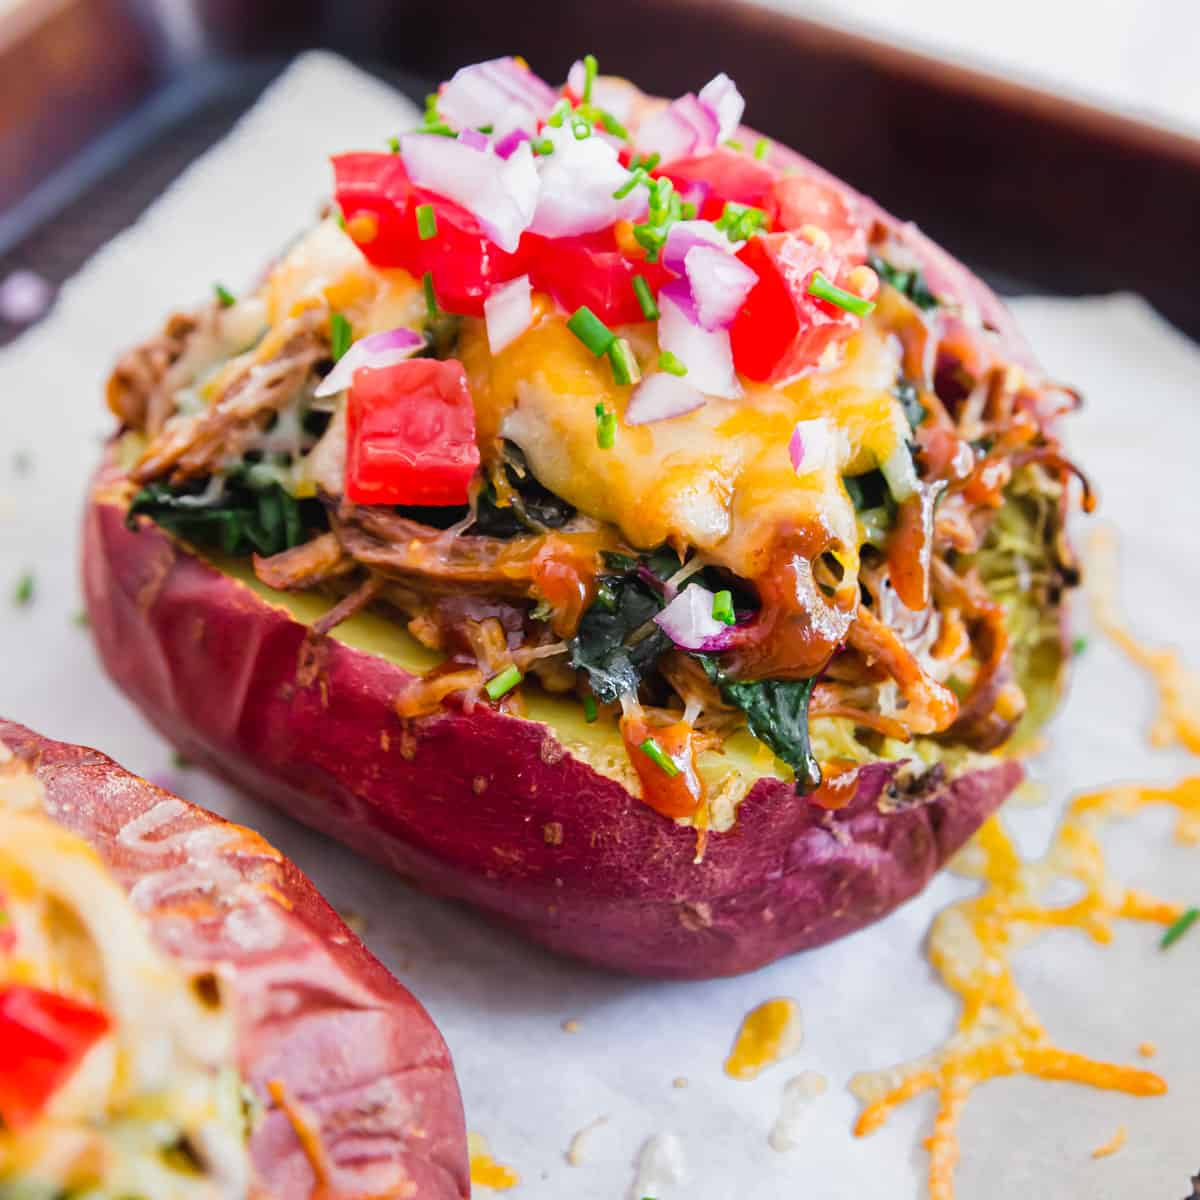 These loaded BBQ brisket baked potatoes are stuffed to the brim and beyond delicious. They're a great recipe if you've got leftover beef brisket on hand and looking for new ways to use it up!